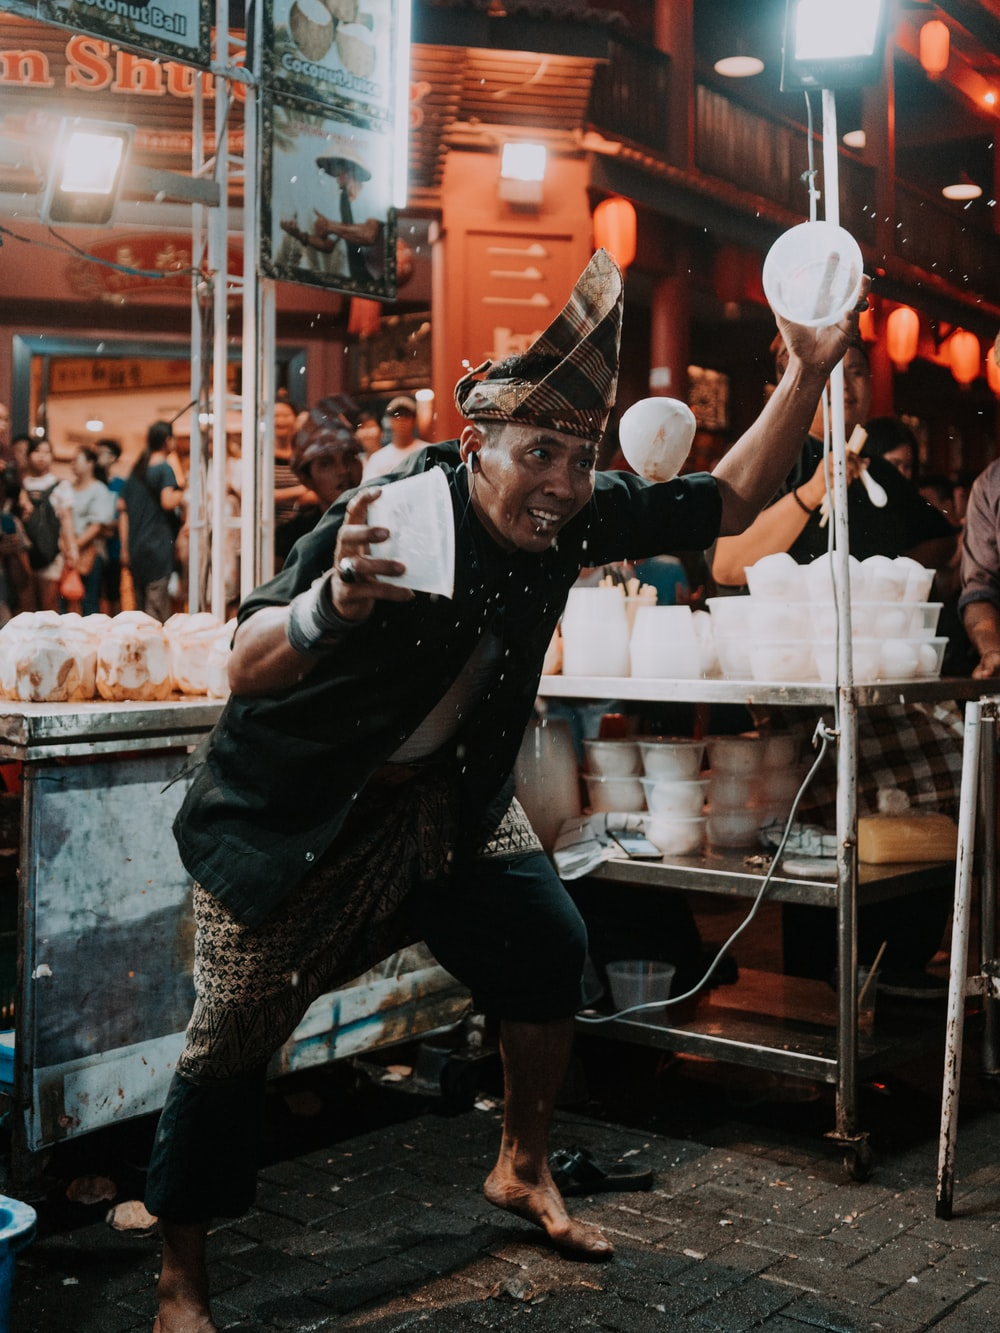 man holding two white plastic bowls near food stall